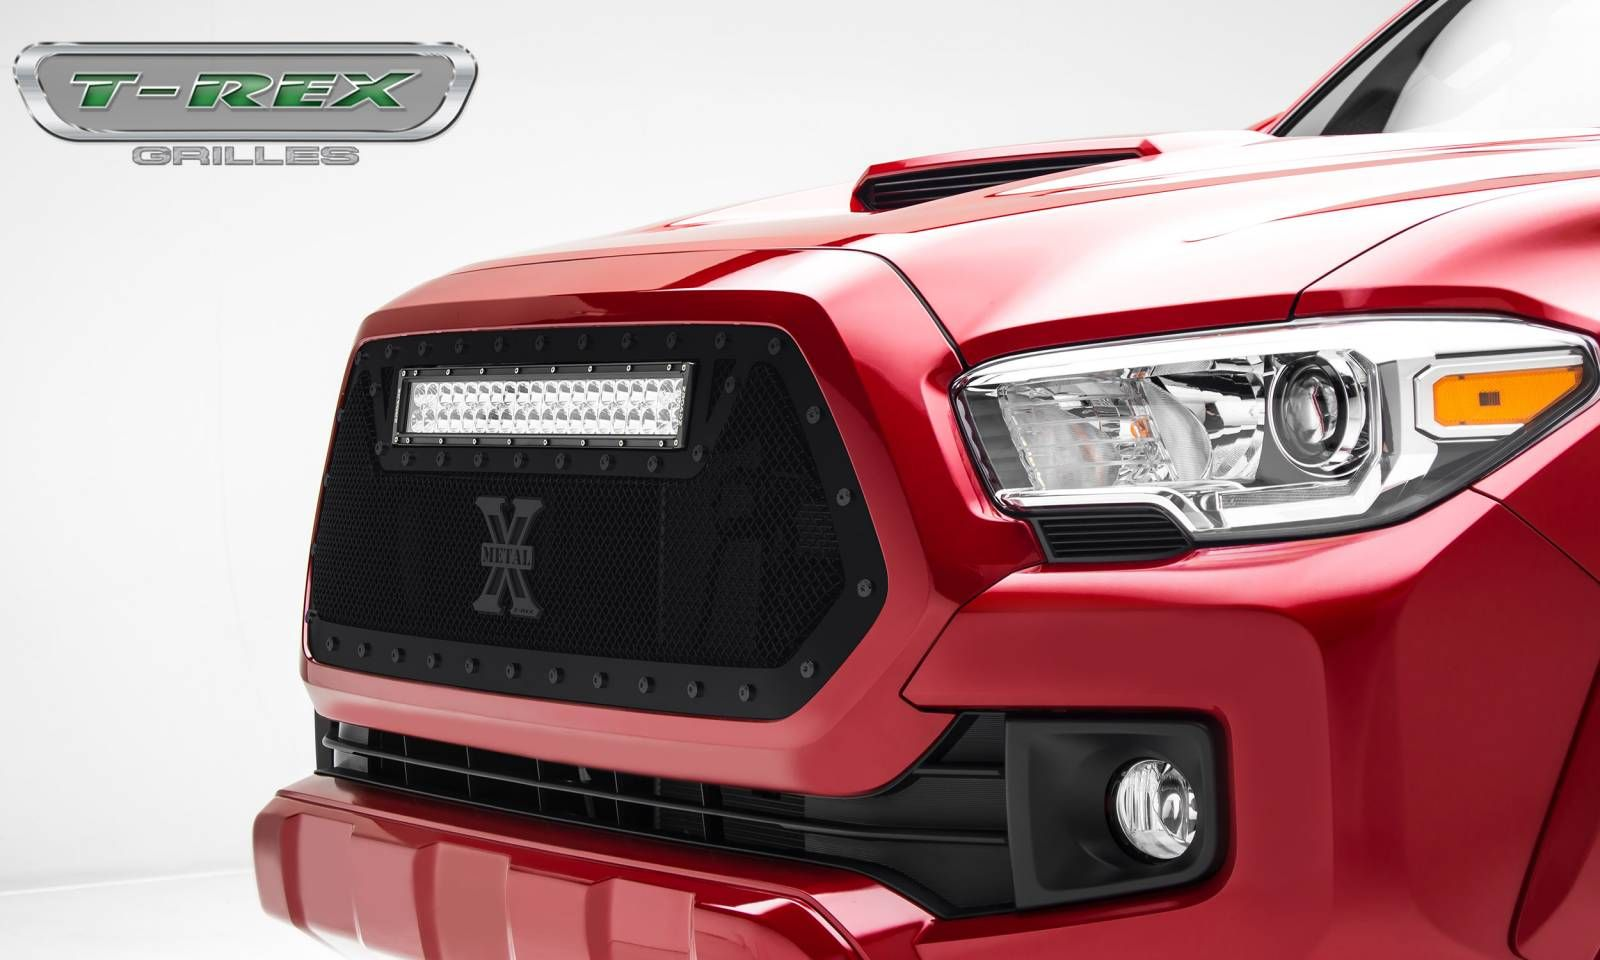 T rex tacoma stealth torch grille insert w 1 20 led light all t rex tacoma stealth torch grille insert w 1 20 led light all black 2016 6319411 br 119394 pure tacoma accessories parts and accessories mozeypictures Image collections